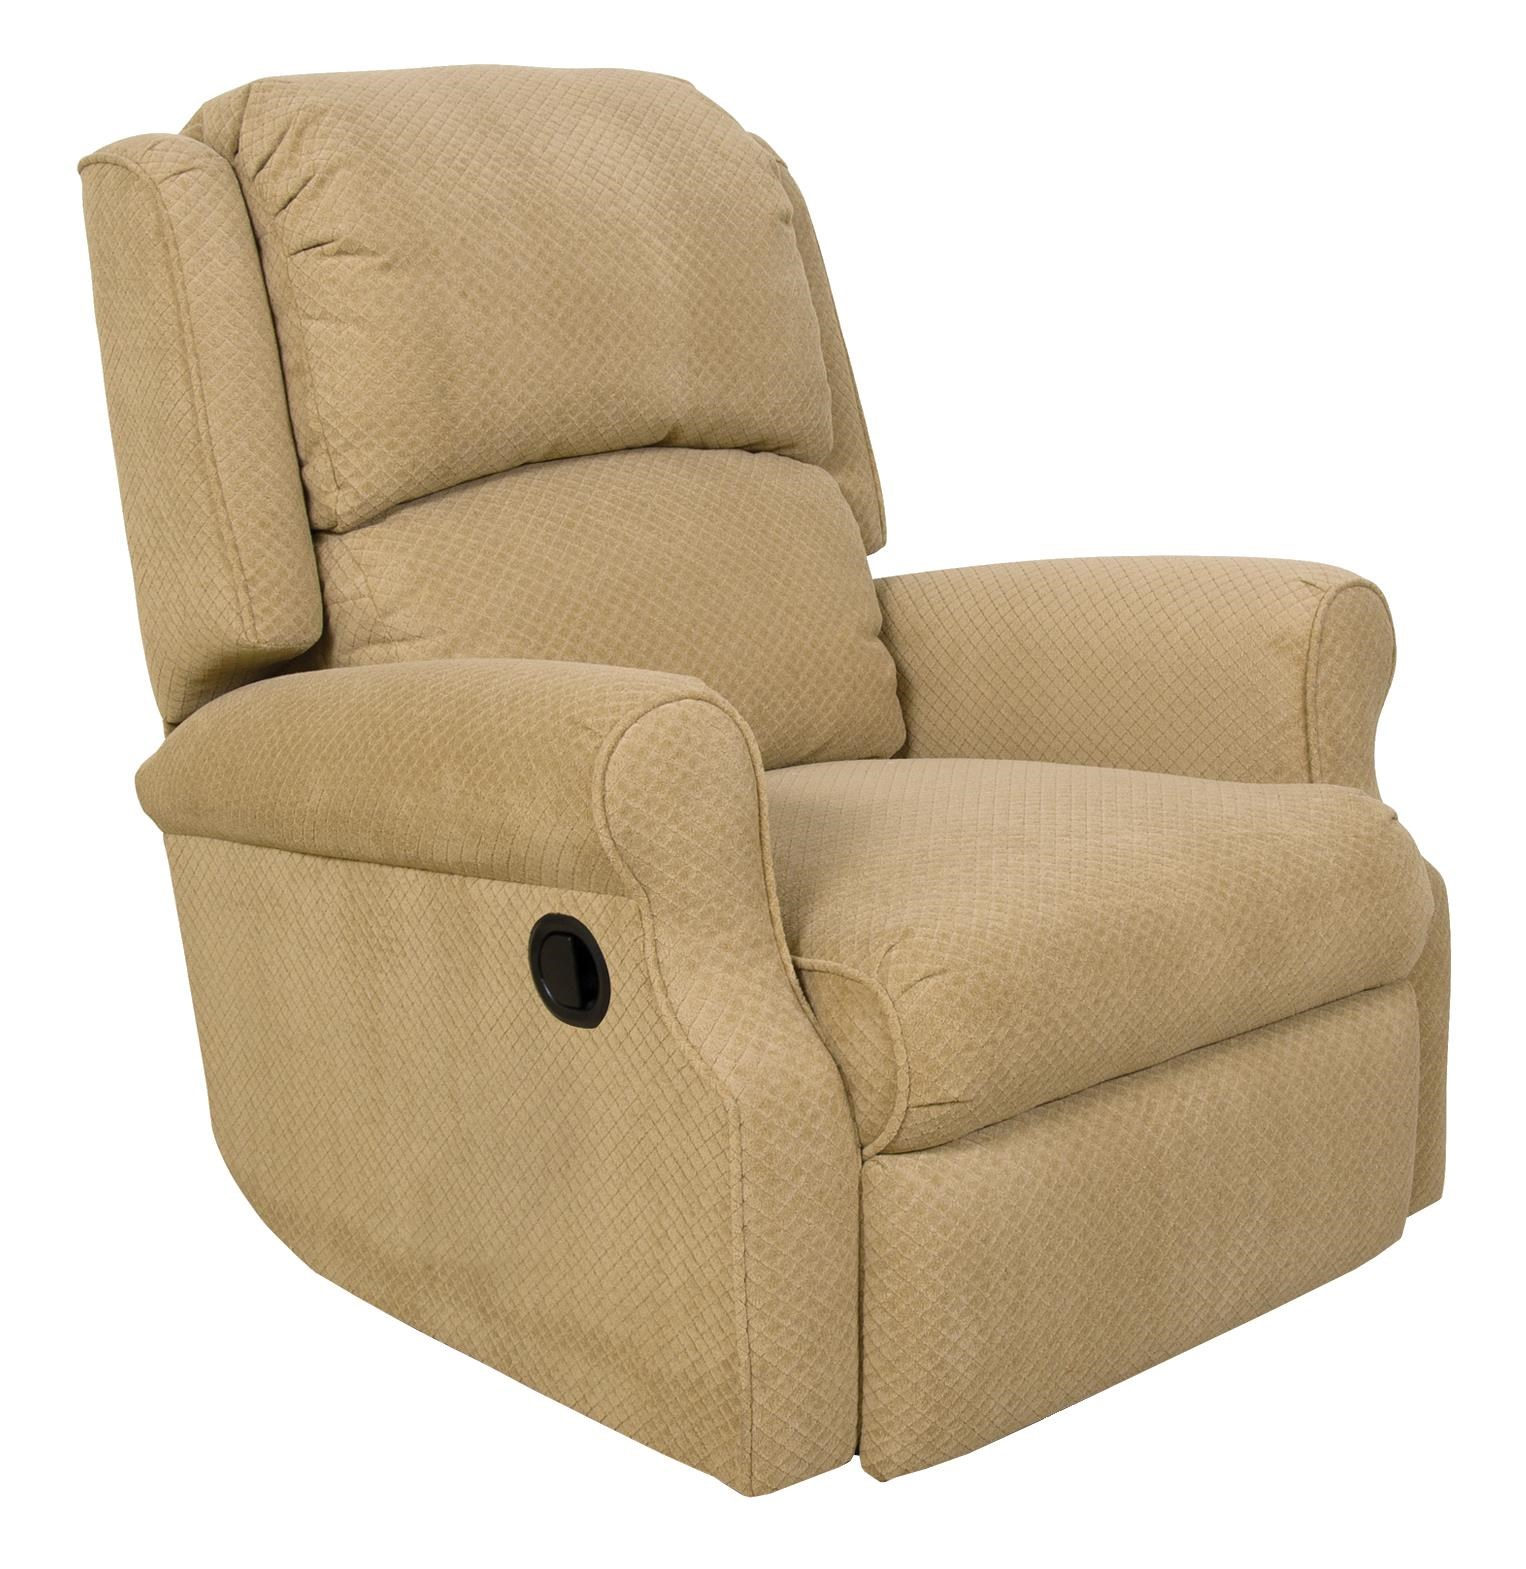 chair design with handle camo folding england marybeth 210 55 medical style reclining lift and base shown may not represent exact features indicated